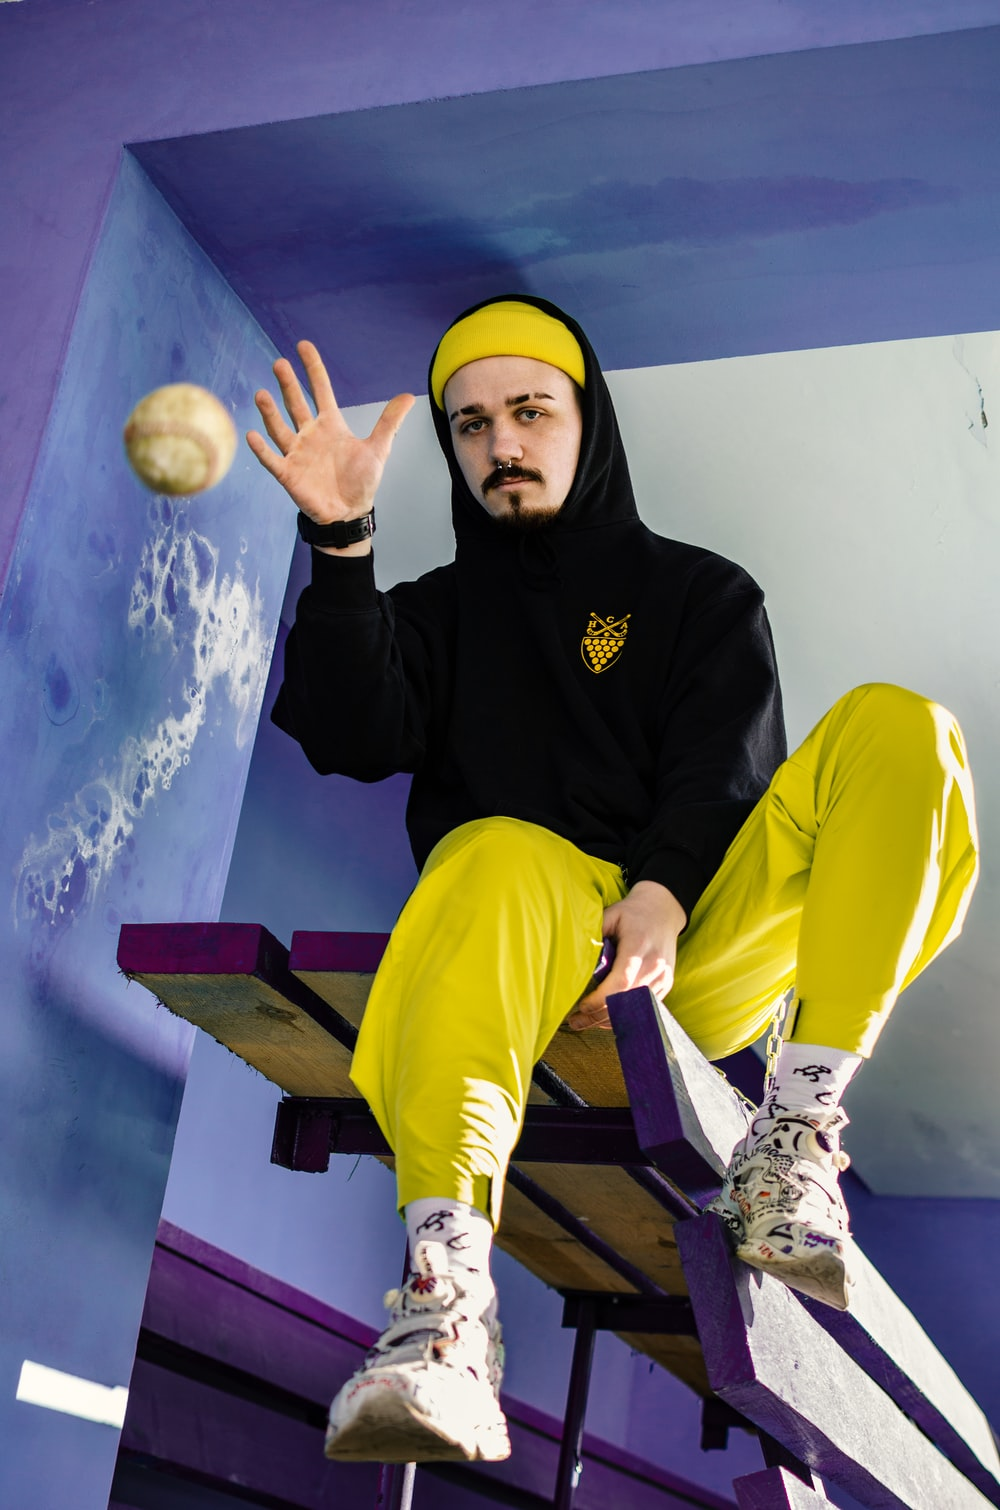 man wearing yellow pants and black hoodie about to throw the tennis ball